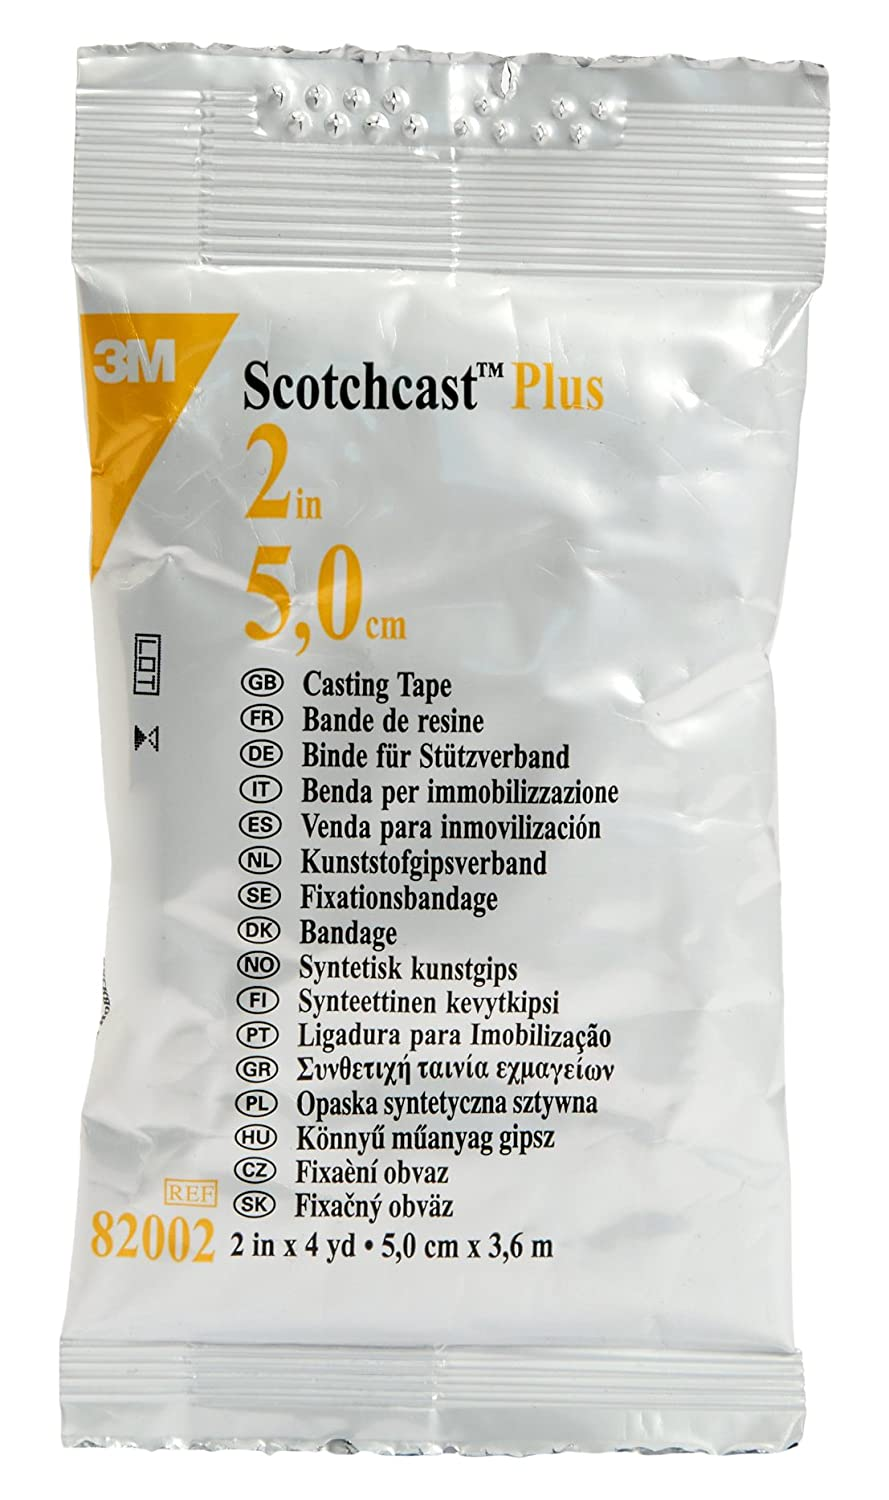 3M Scotchcast 82002 Plus Casting Tape White Max 87% OFF o low-pricing x Yard Pack 4 2